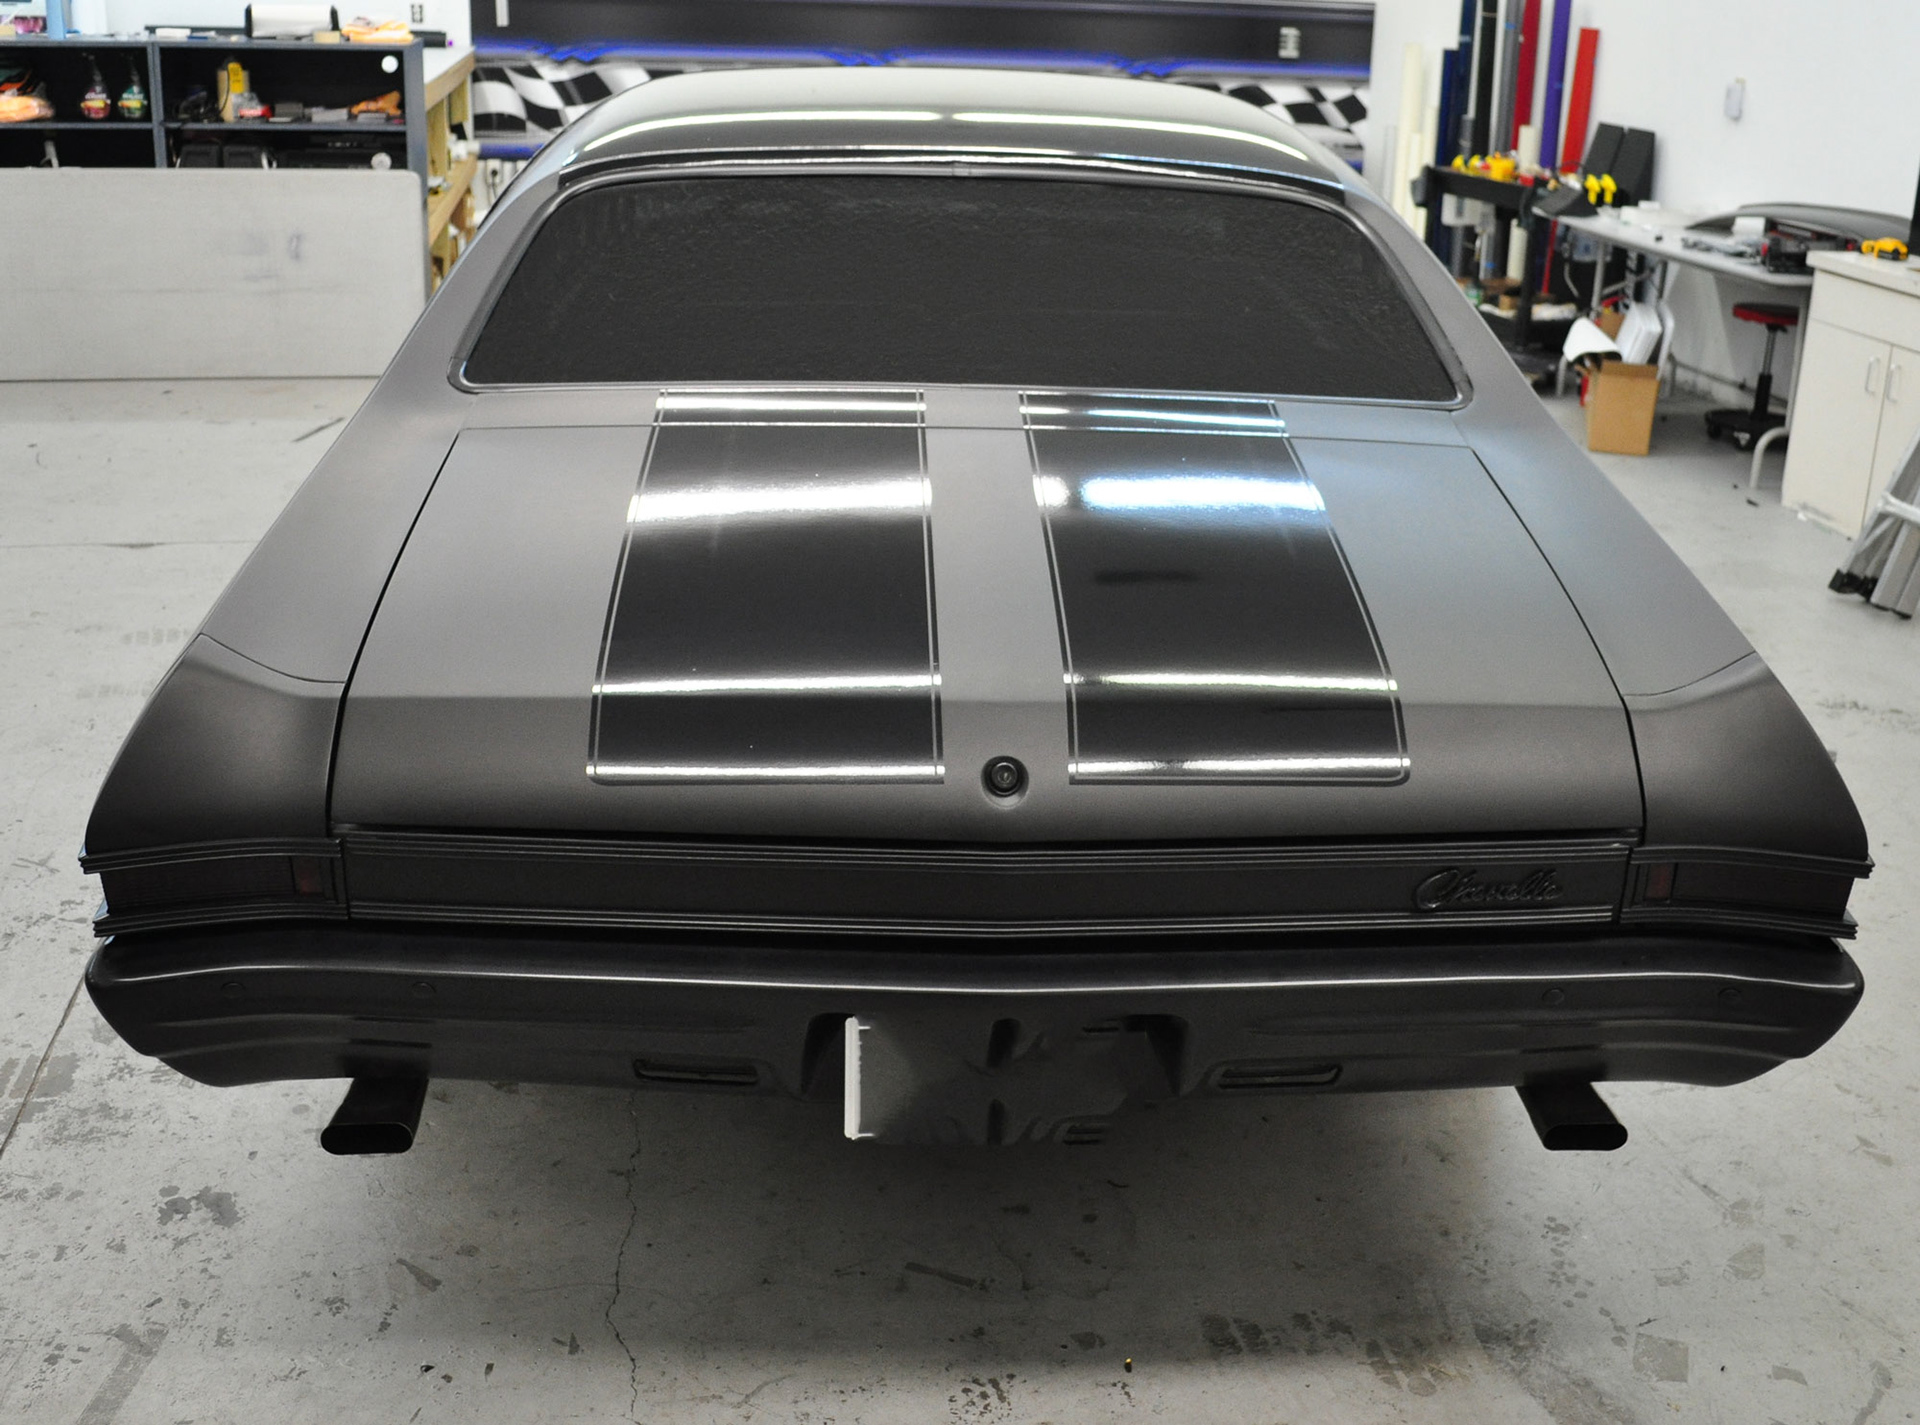 D Aa E D Dd F Rw on Chevelle Black With Gloss Matte Stripes